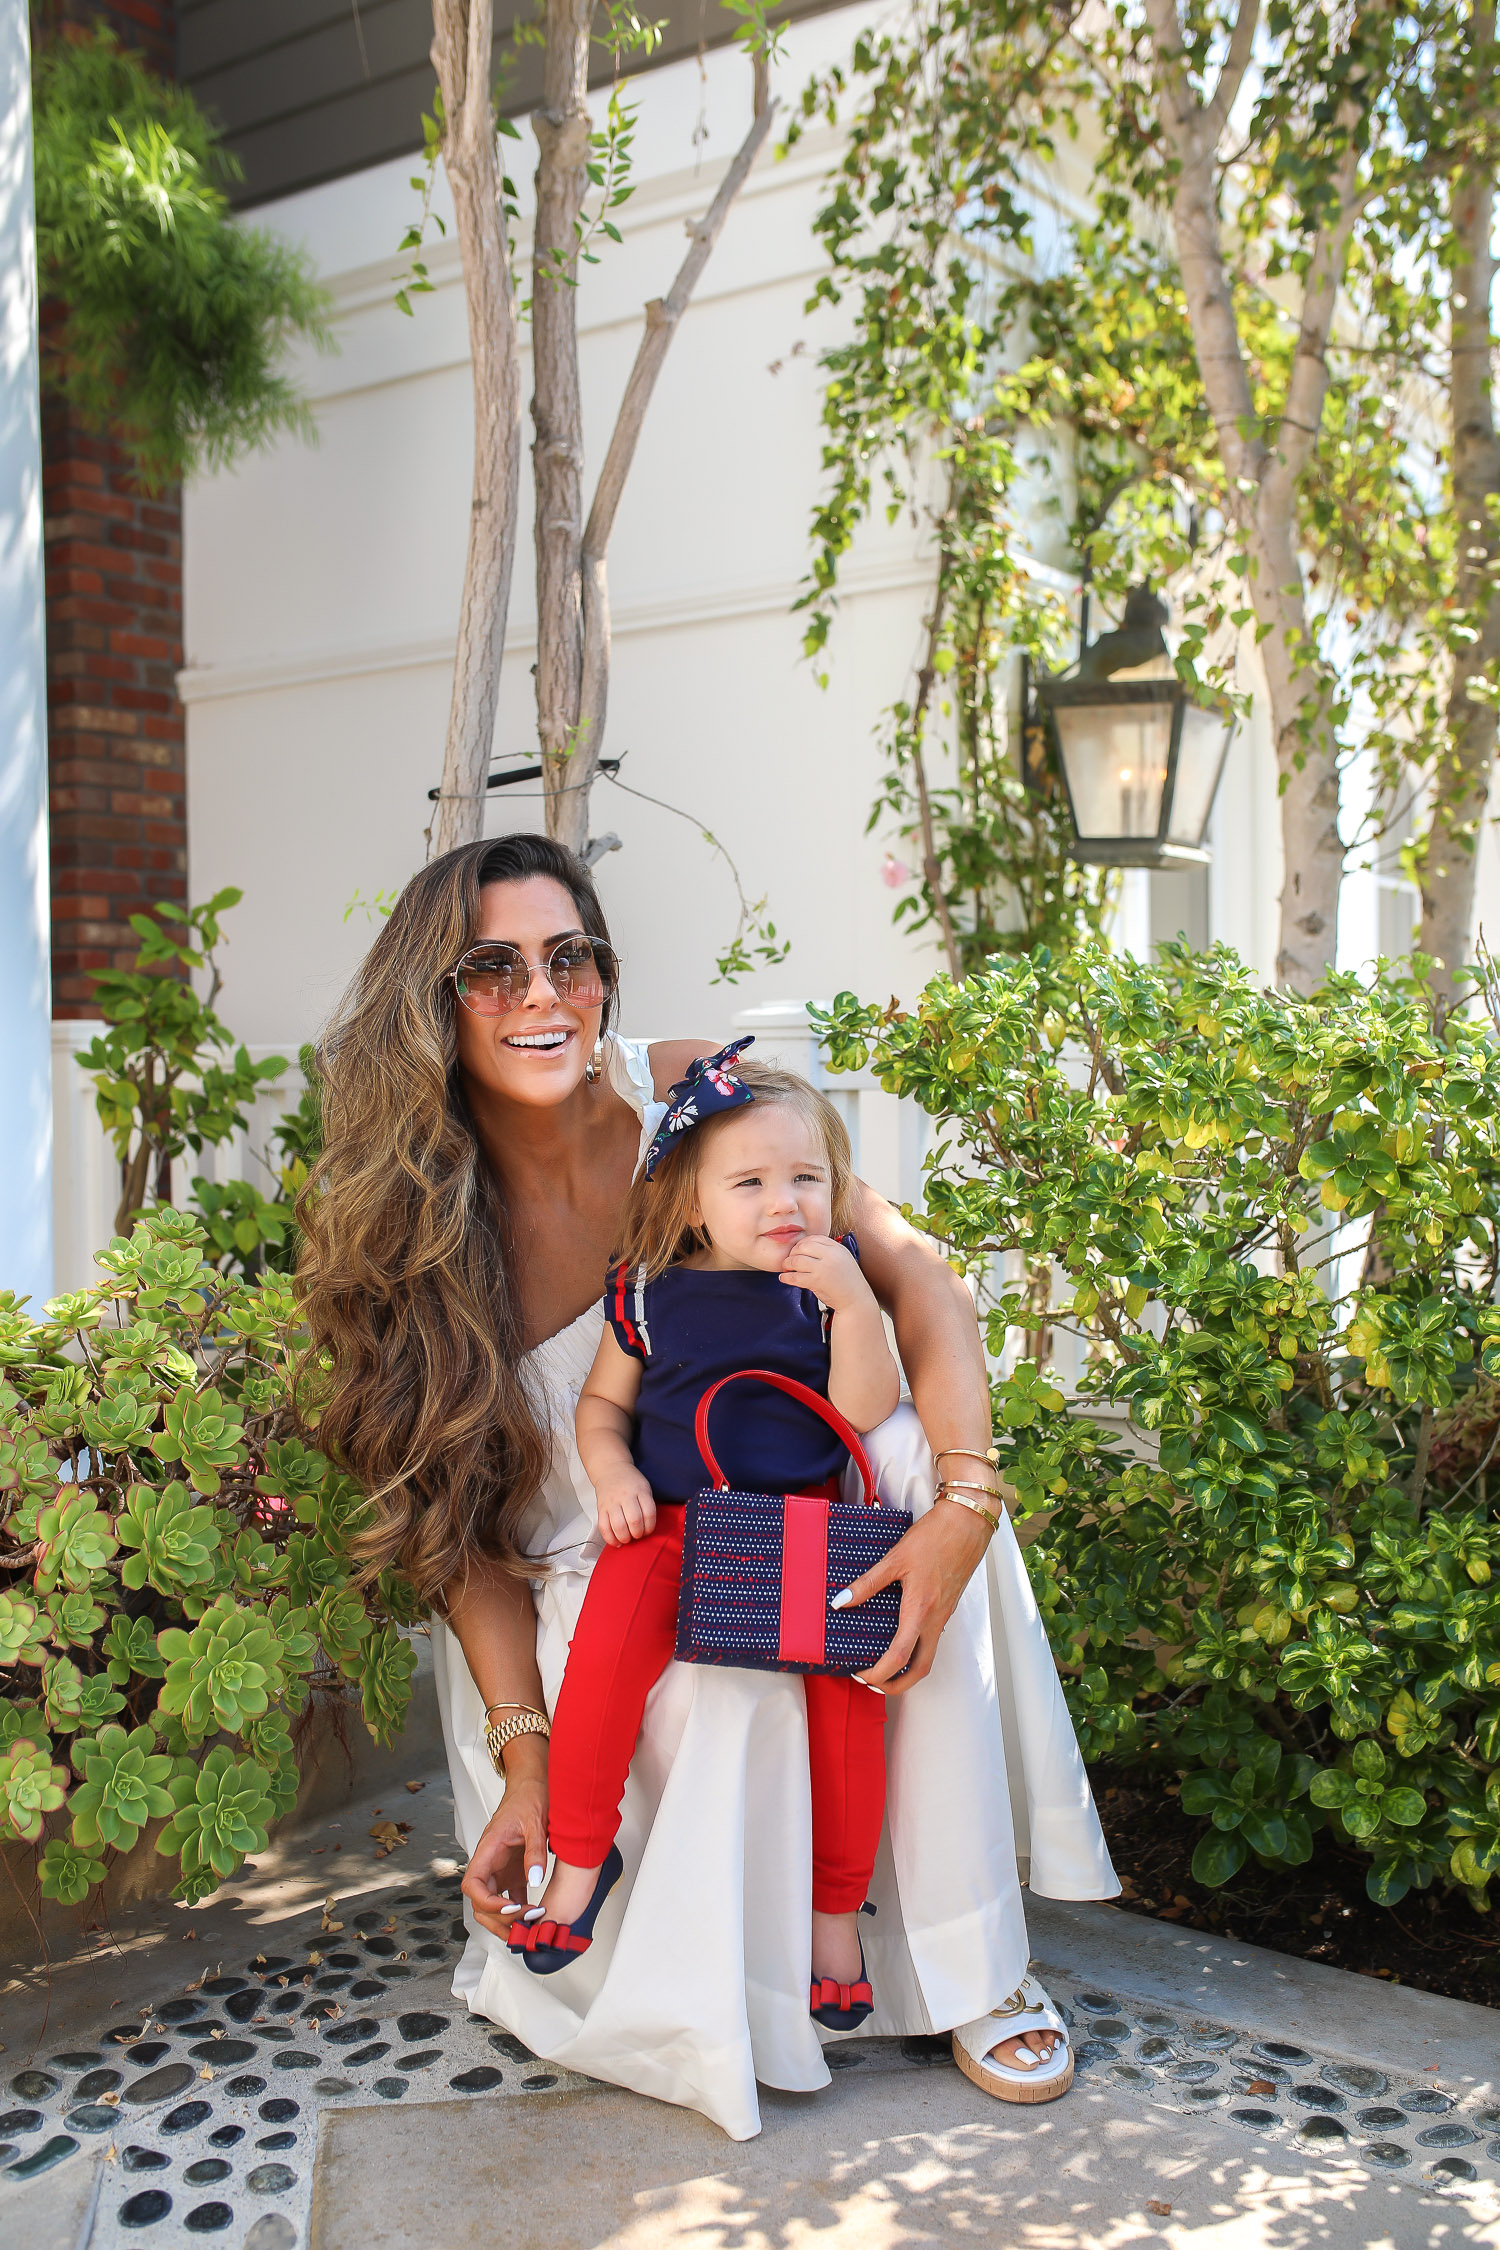 Janie and Jack by popular US fashion Blog, The Sweetest Thing: image of a mom holding her daughter outside in Newport Beach, CA and wearing a white one shoulder dress and white Channel slide sandals and Janie and Jack PLEATED SLEEVE TOP, Janie and Jack BUTTON PONTE PANT, Janie and Jack BOW ANKLE STRAP FLAT, FLORAL BOW BARRETTE, and Janie and Jack BOUCLÉ PURSE.